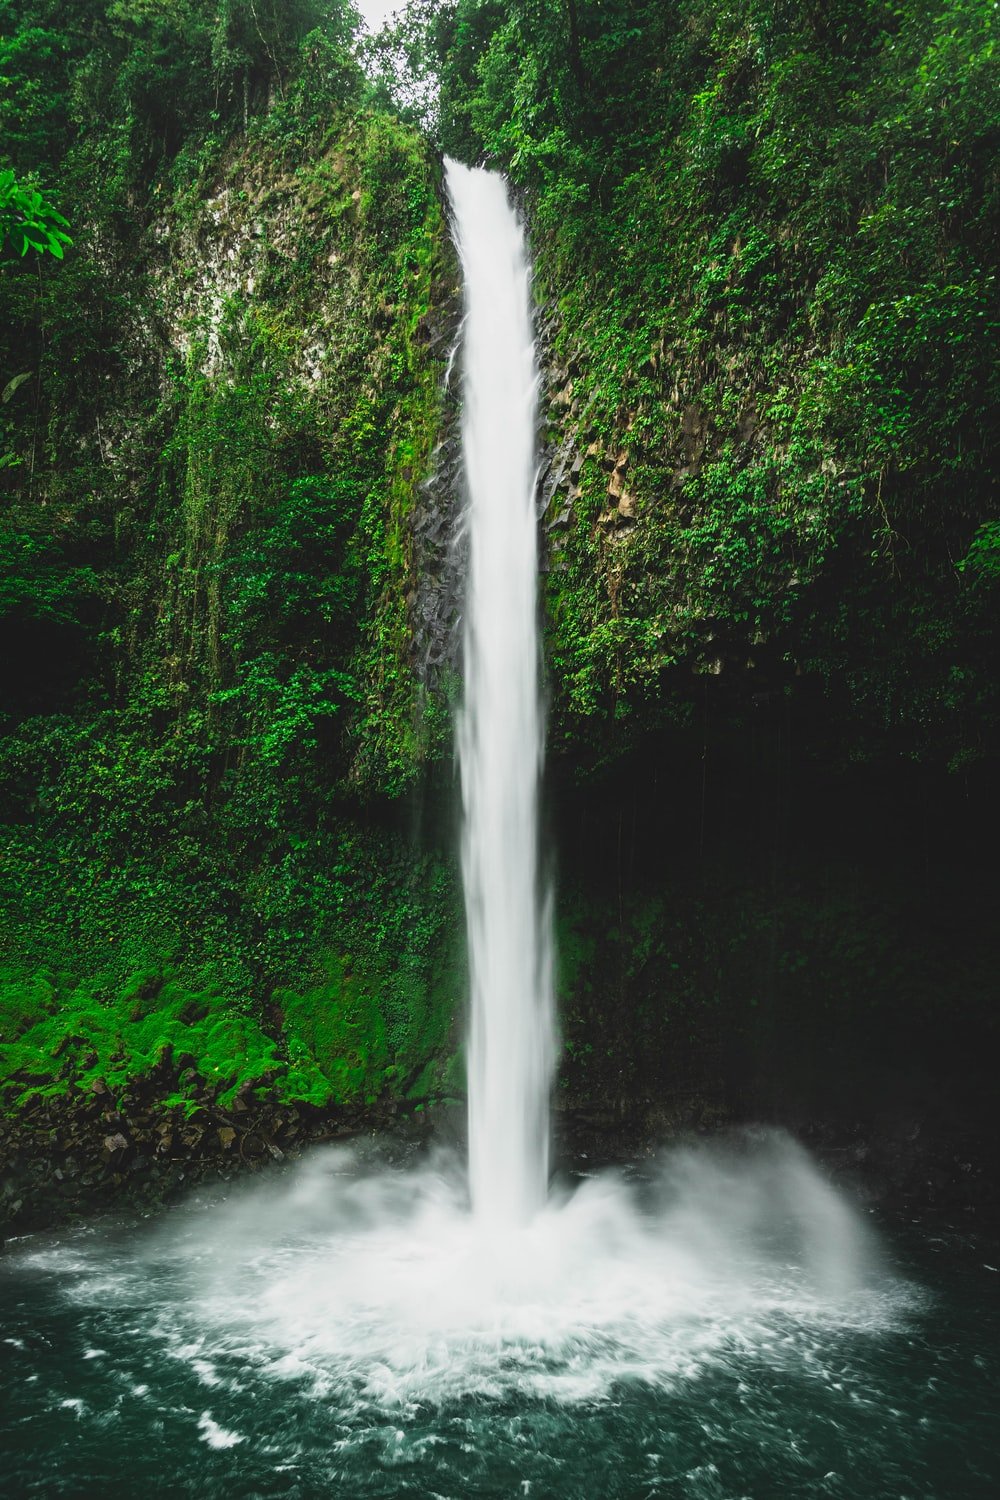 water falls in the middle of green trees